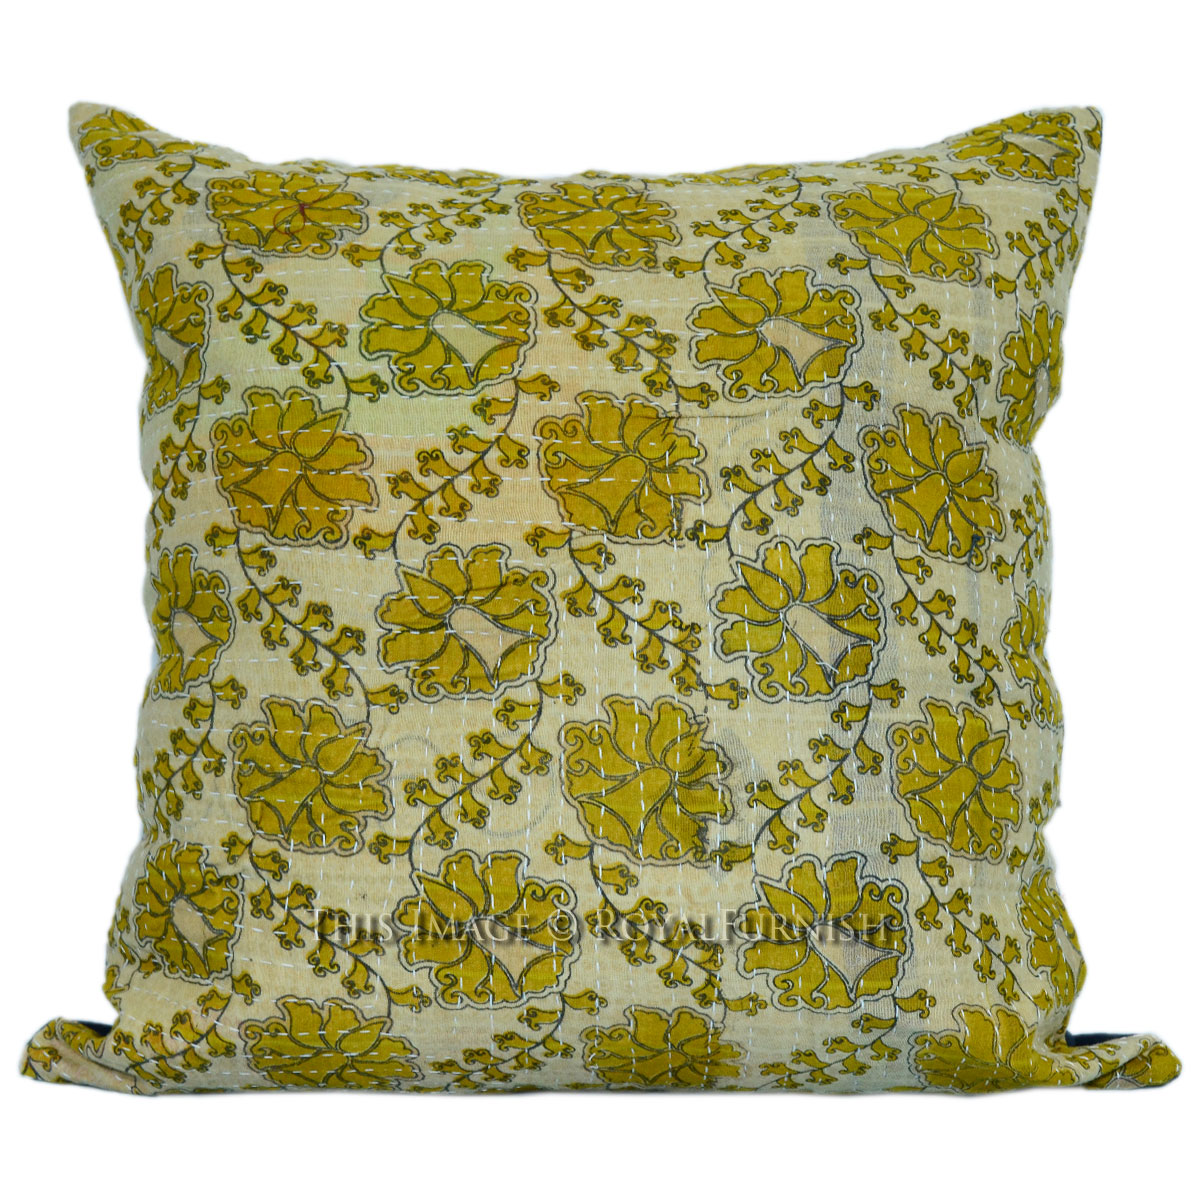 Vintage Decorative Pillow : 16x16 Decorative Vintage Kantha Quilt Square Pillow Case - RoyalFurnish.com